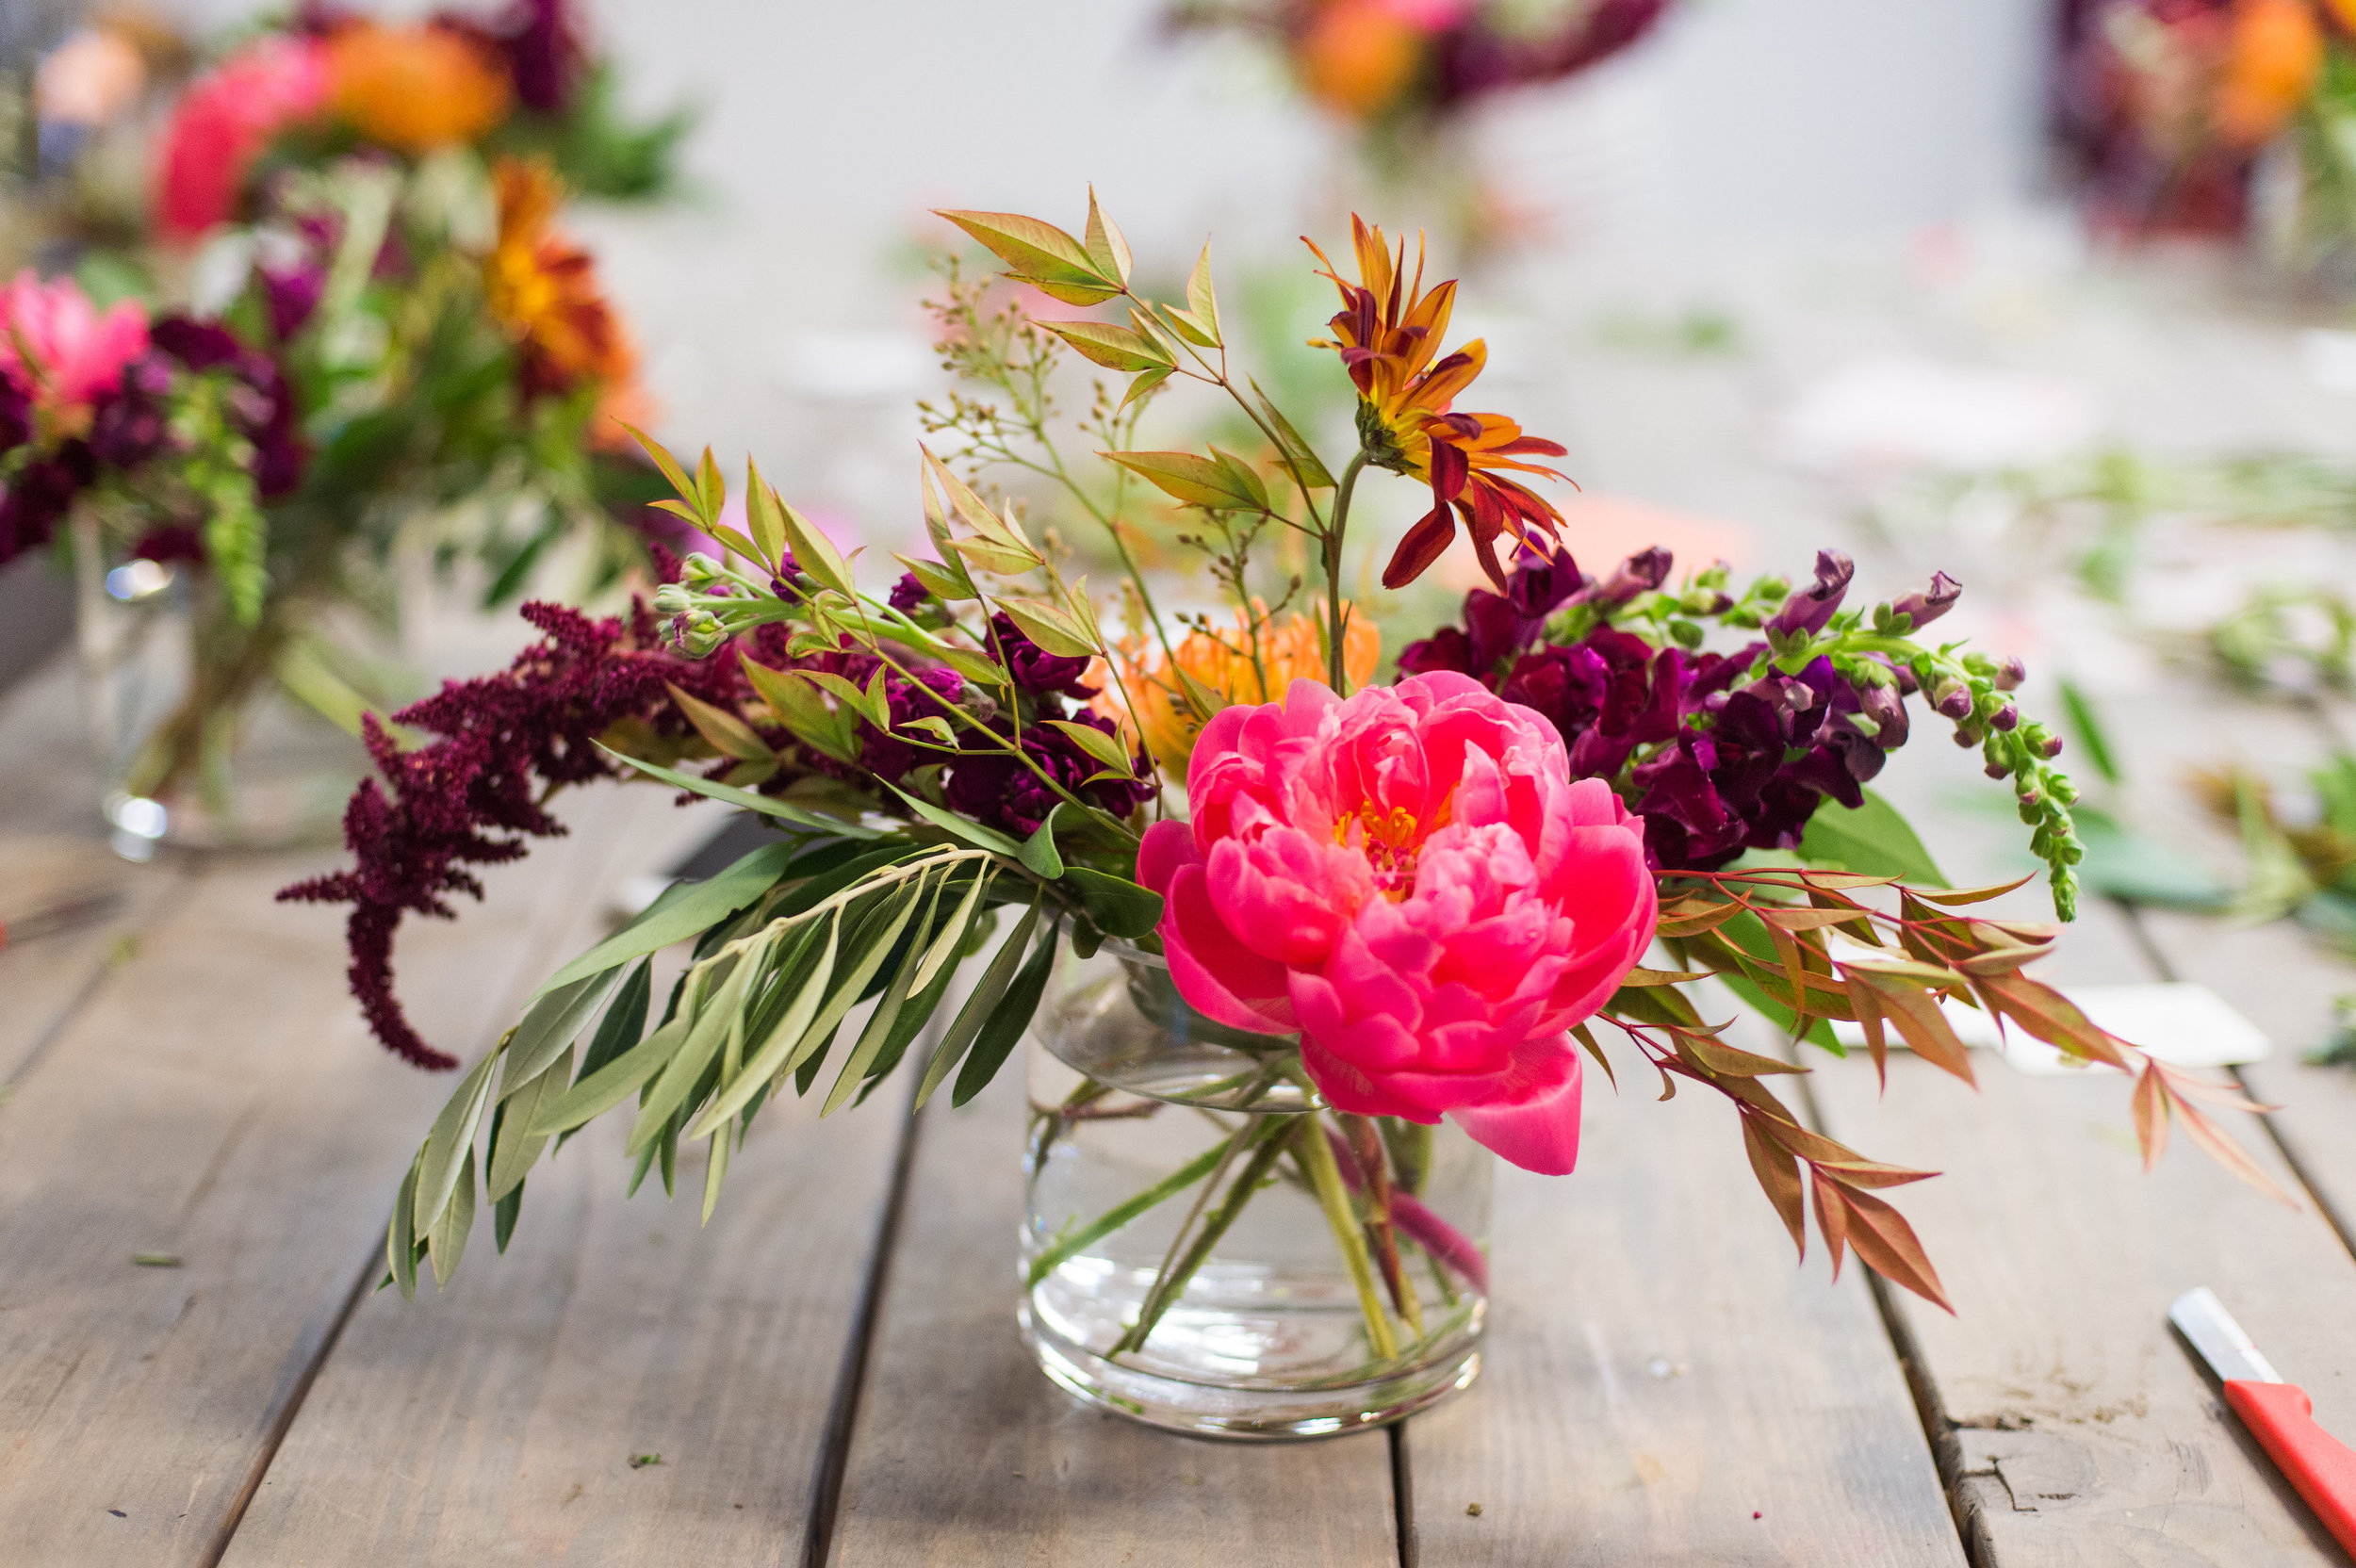 Lace and Lilies floral design workshop, Fort Collins Colorado fun - coral charm peony